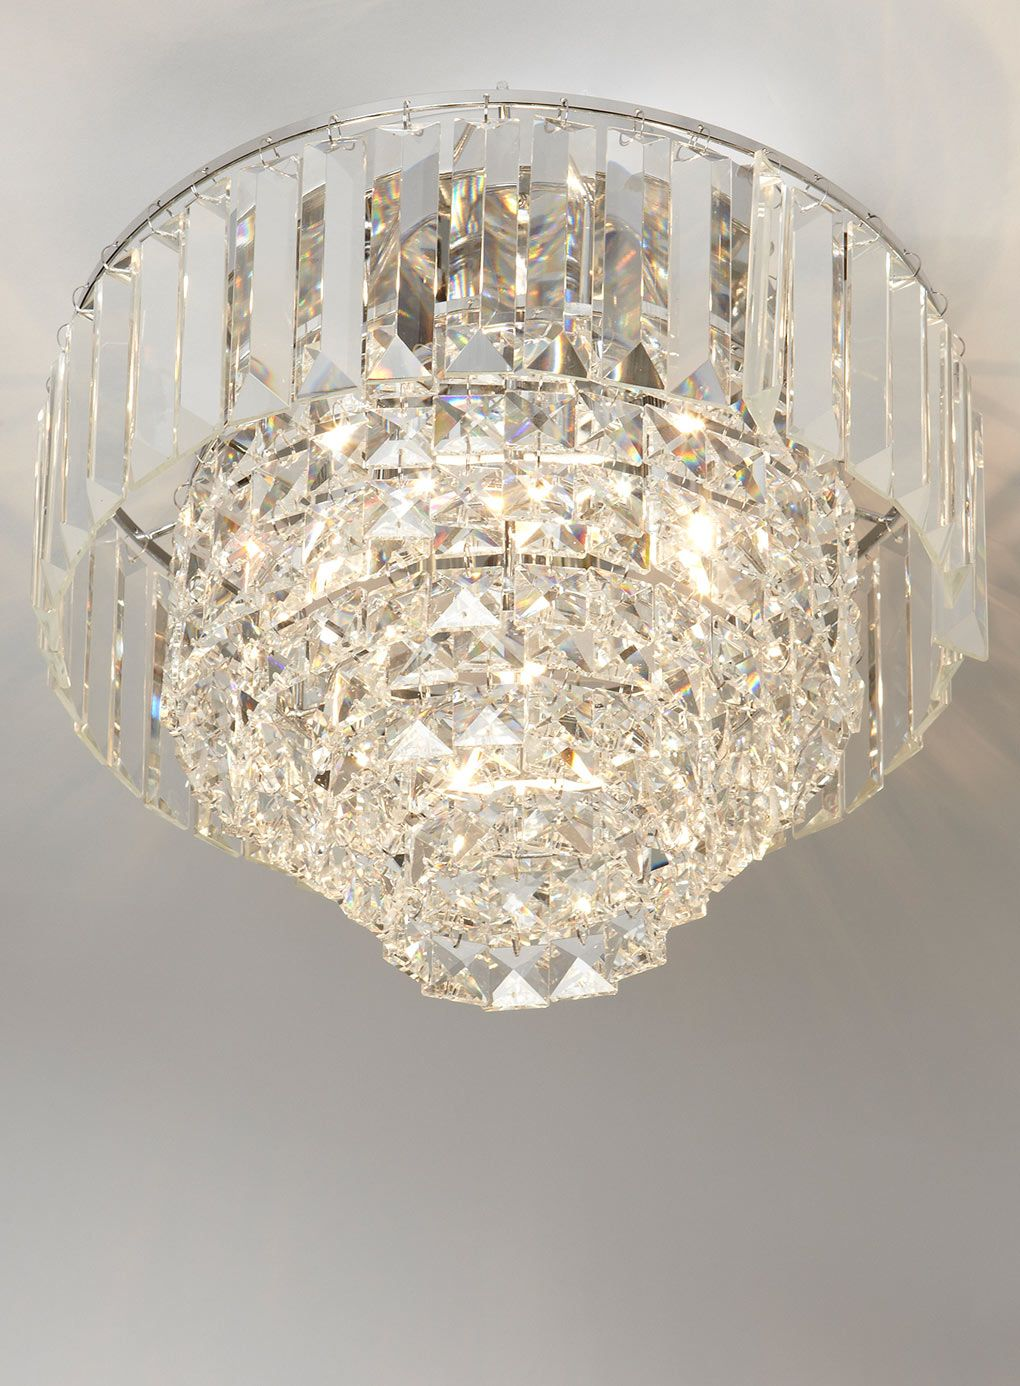 Bedroom Ceiling Lights Bhs : Chrome paladina crystal flush ceiling lights lighting